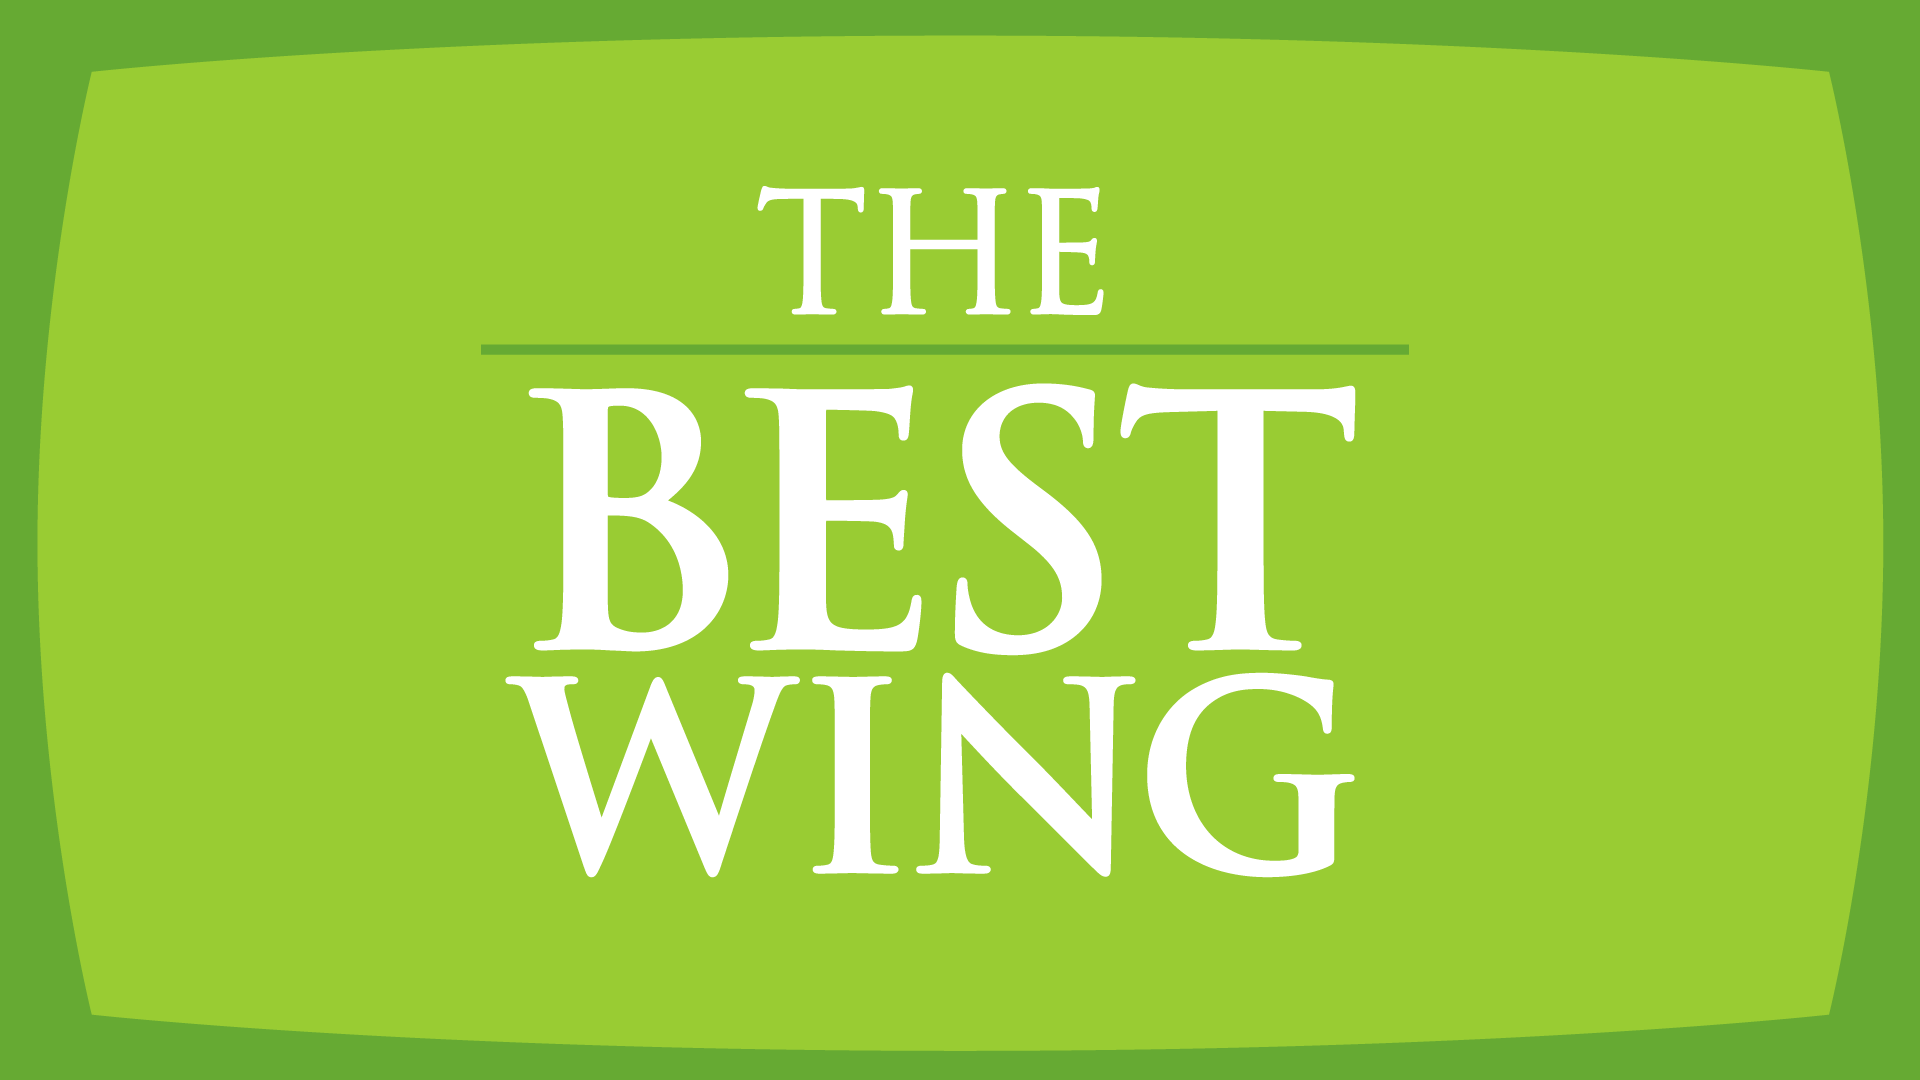 The Best Wing